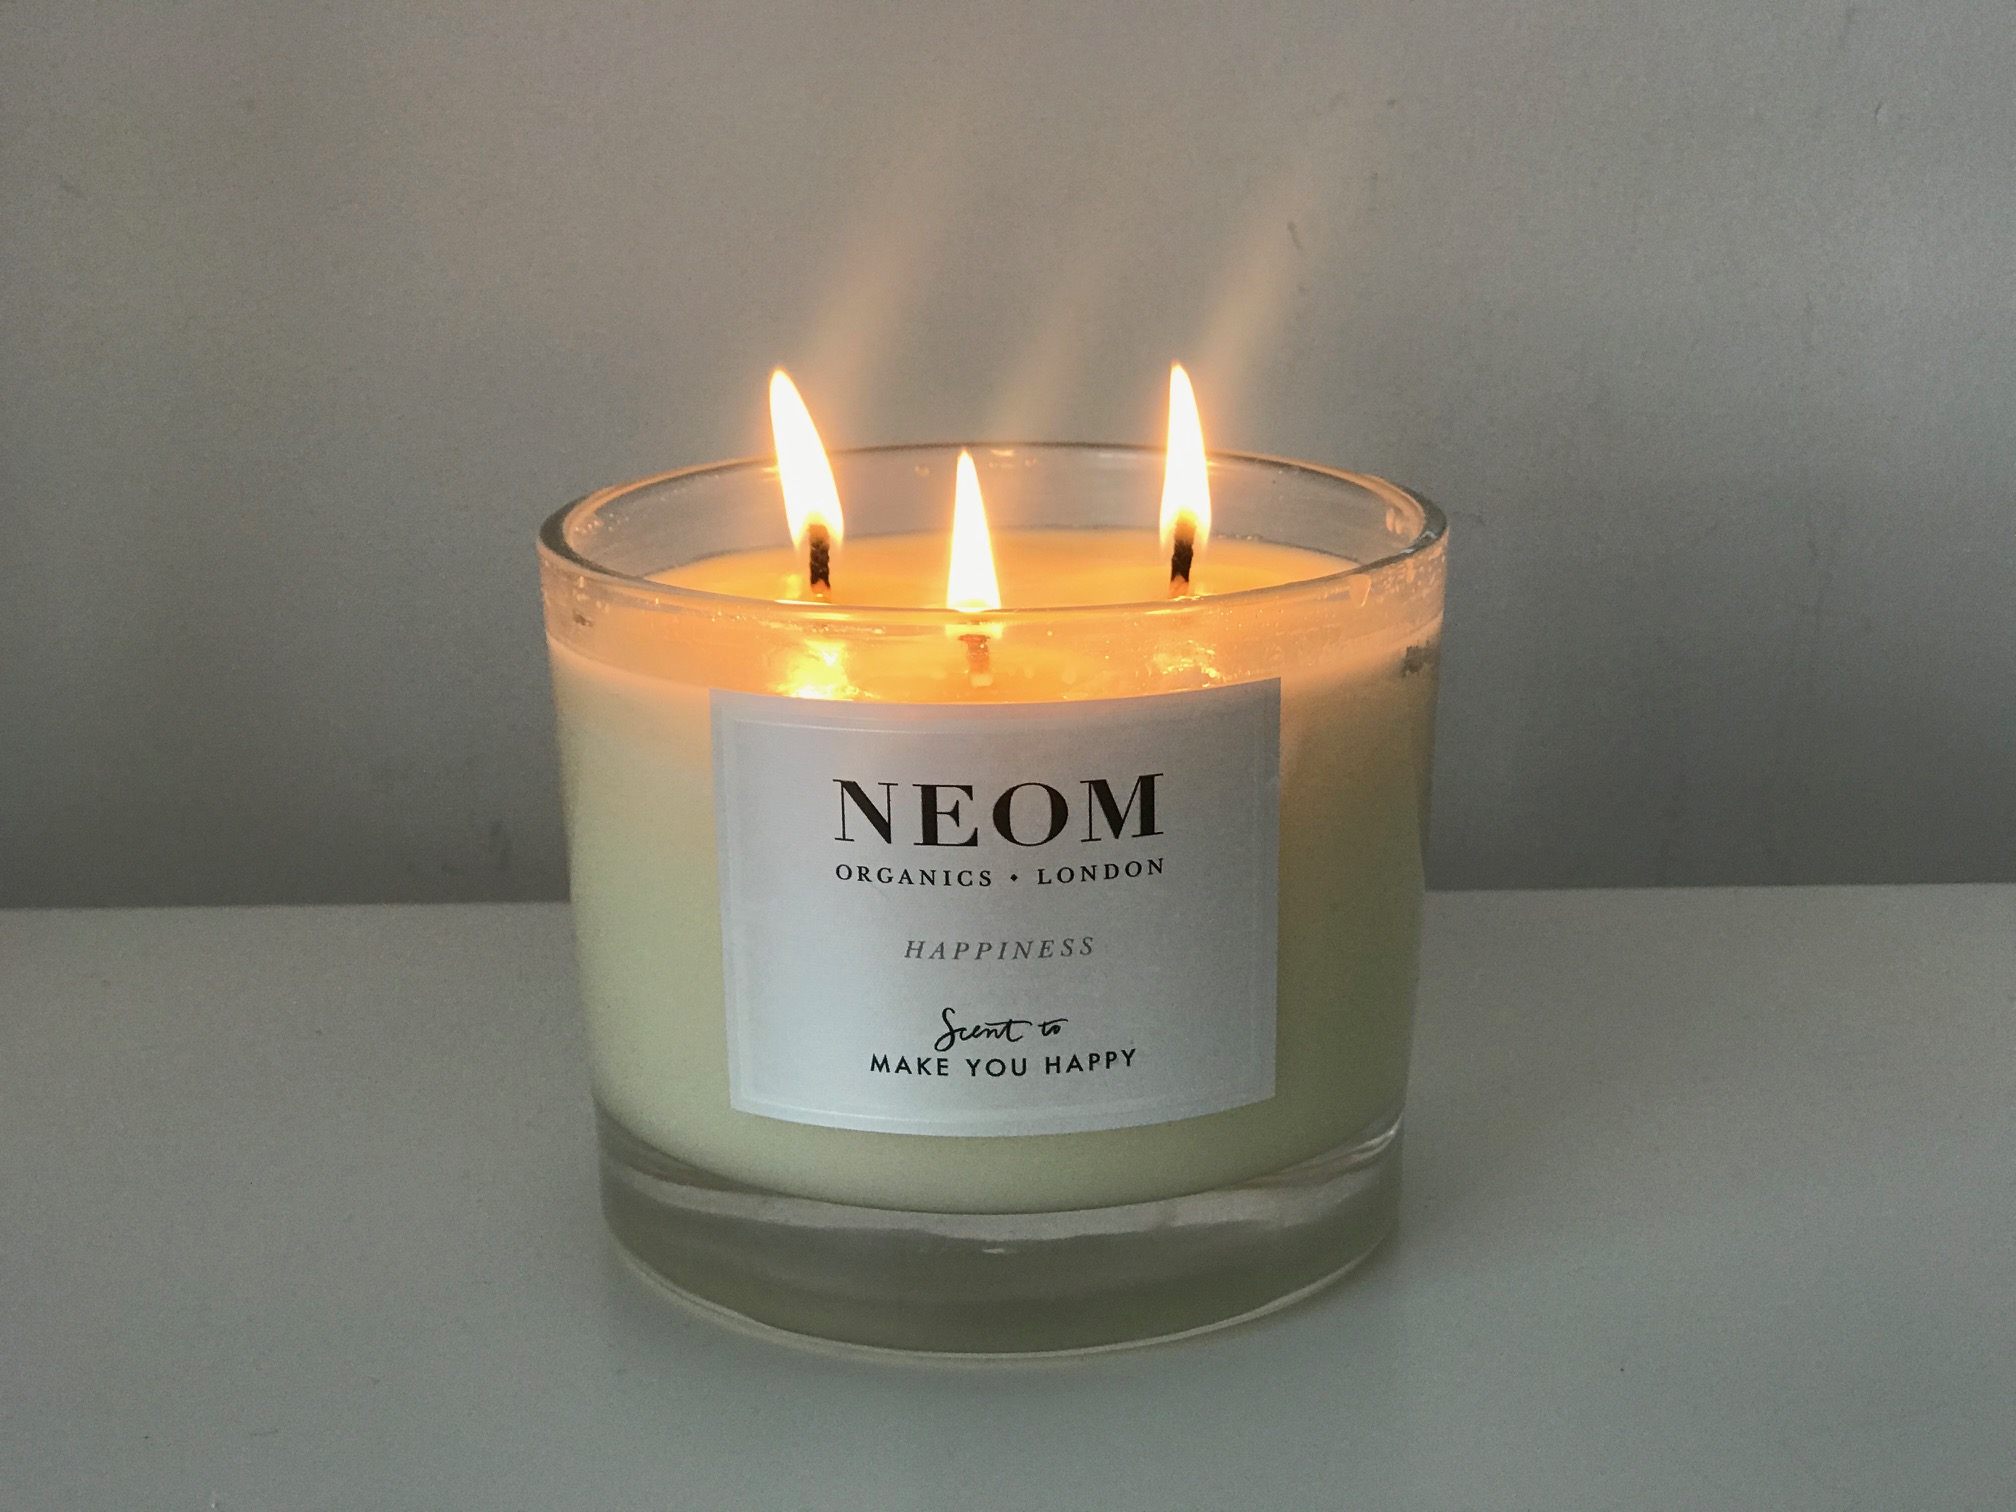 A lit NEOM candle - 1 of 8 Lockdown Must-Haves